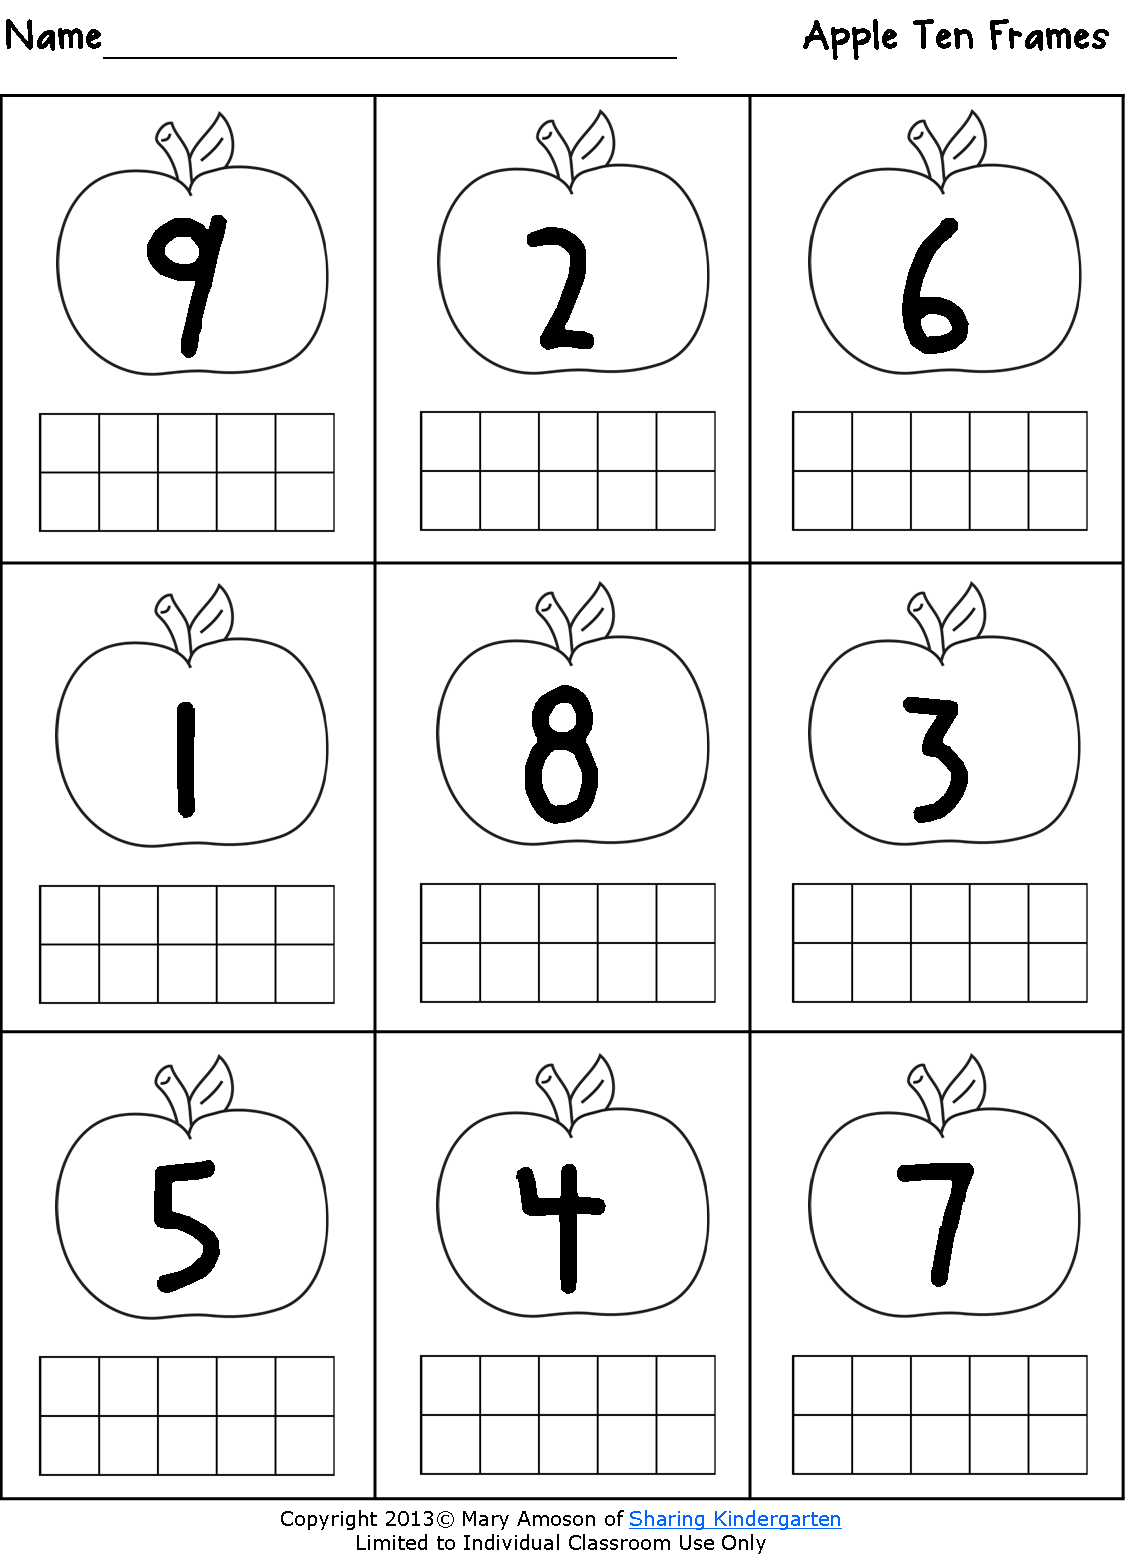 One clipart unifix cubes. A is for apple